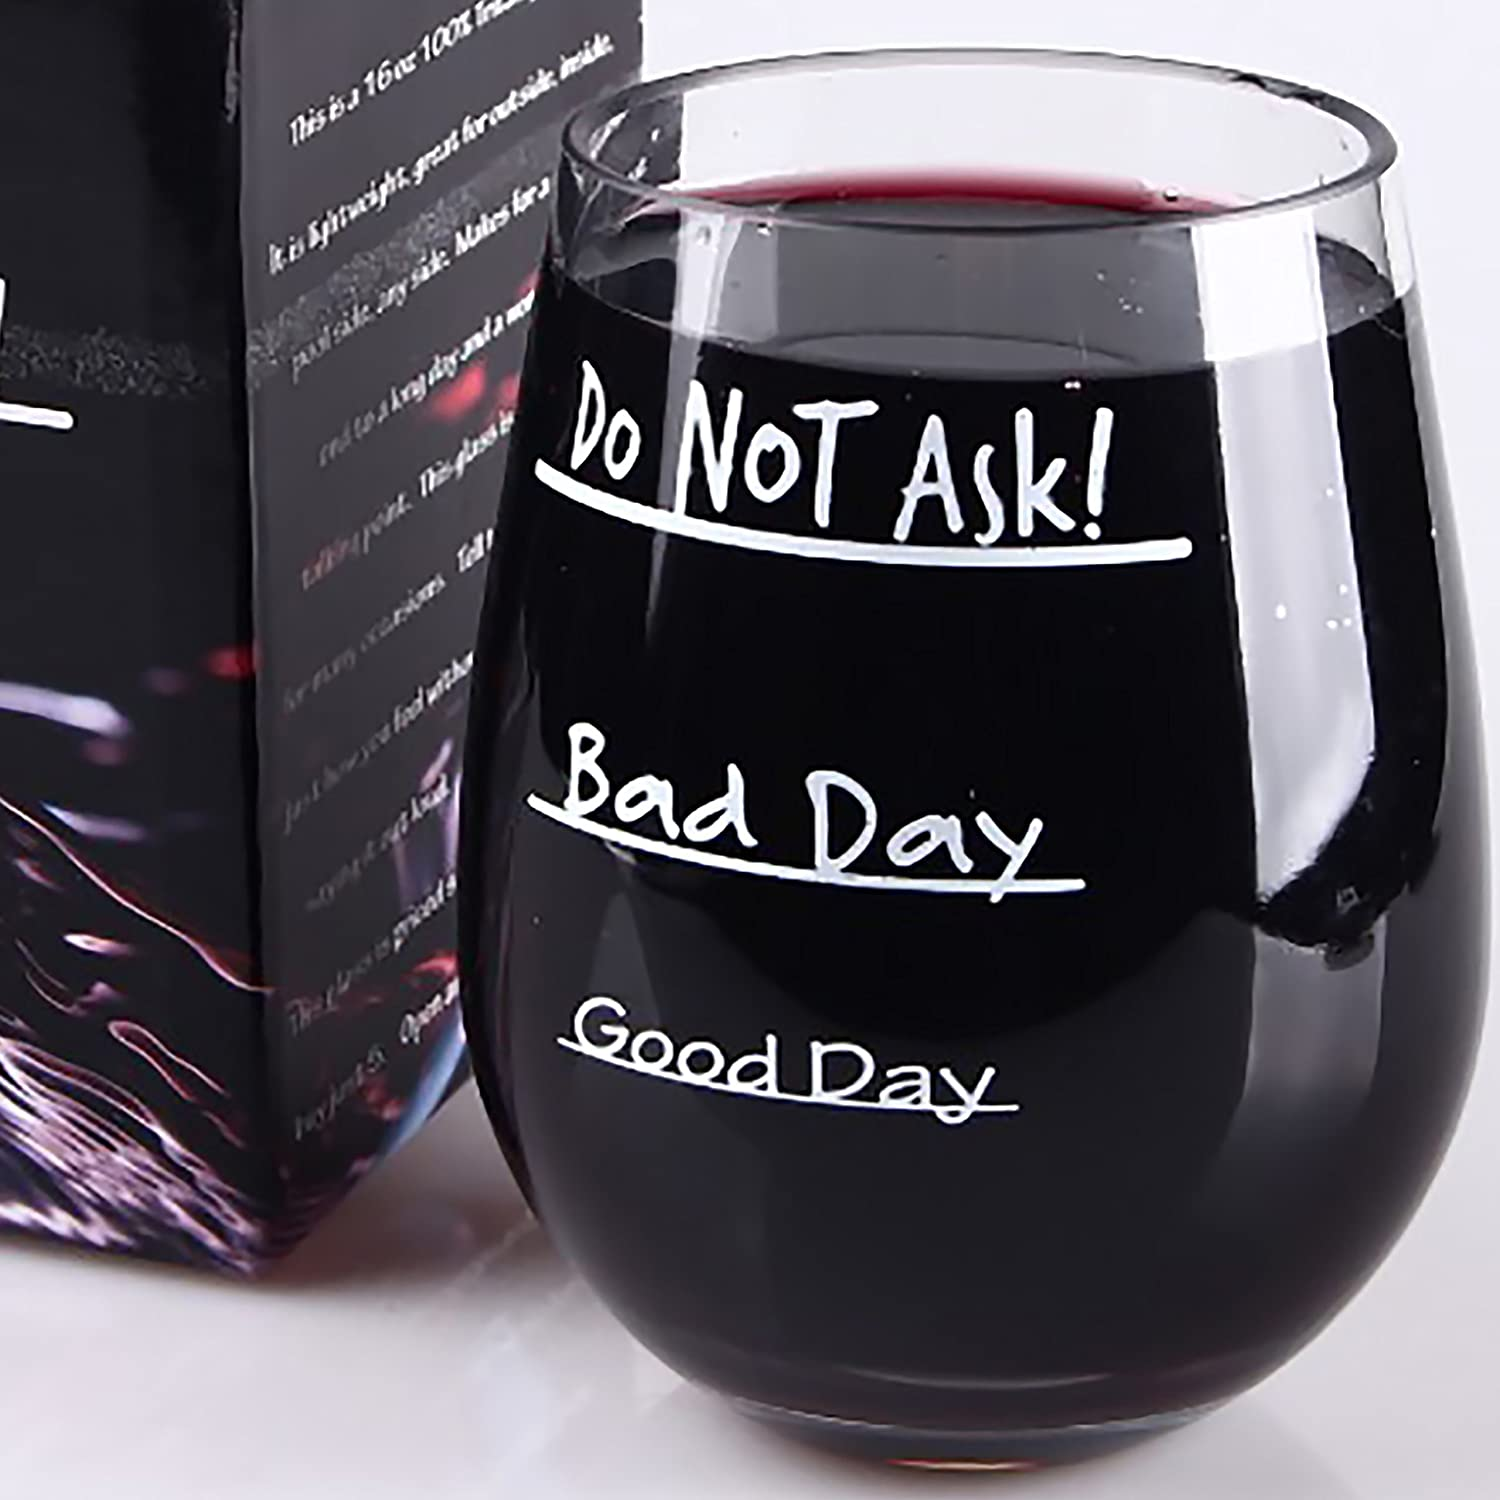 Good Day - Bad Day - Do NOT Ask - Unbreakable - Shatterproof - Stemless Wine Glass - Gift Box Included - 16oz